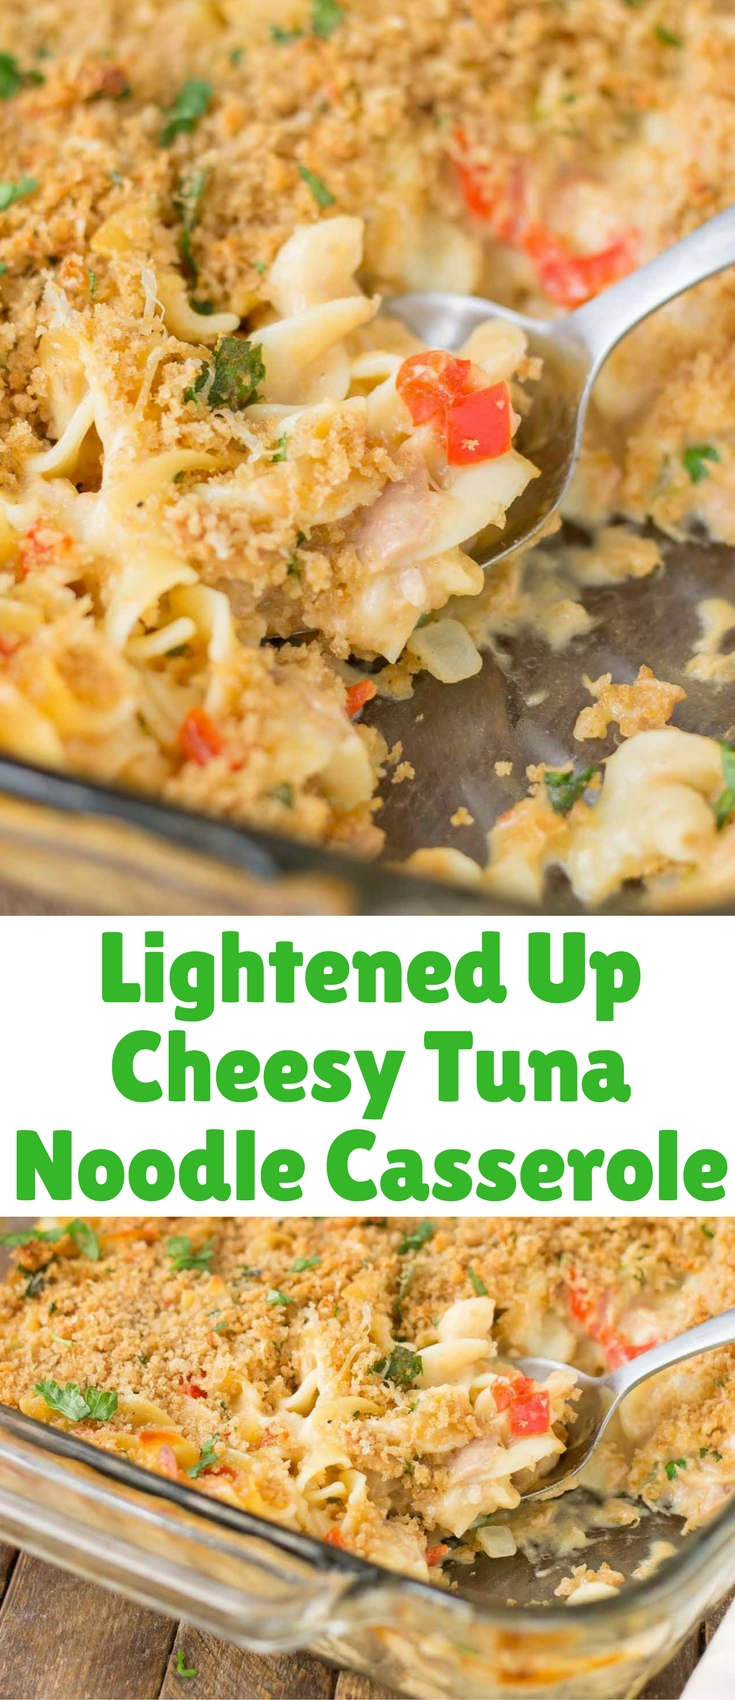 Delicious, creamy and made healthier with a few ingredient swaps, thisLightened Up Cheesy Tuna Noodle Casserole has all the flavors you loved from when you were a kid!